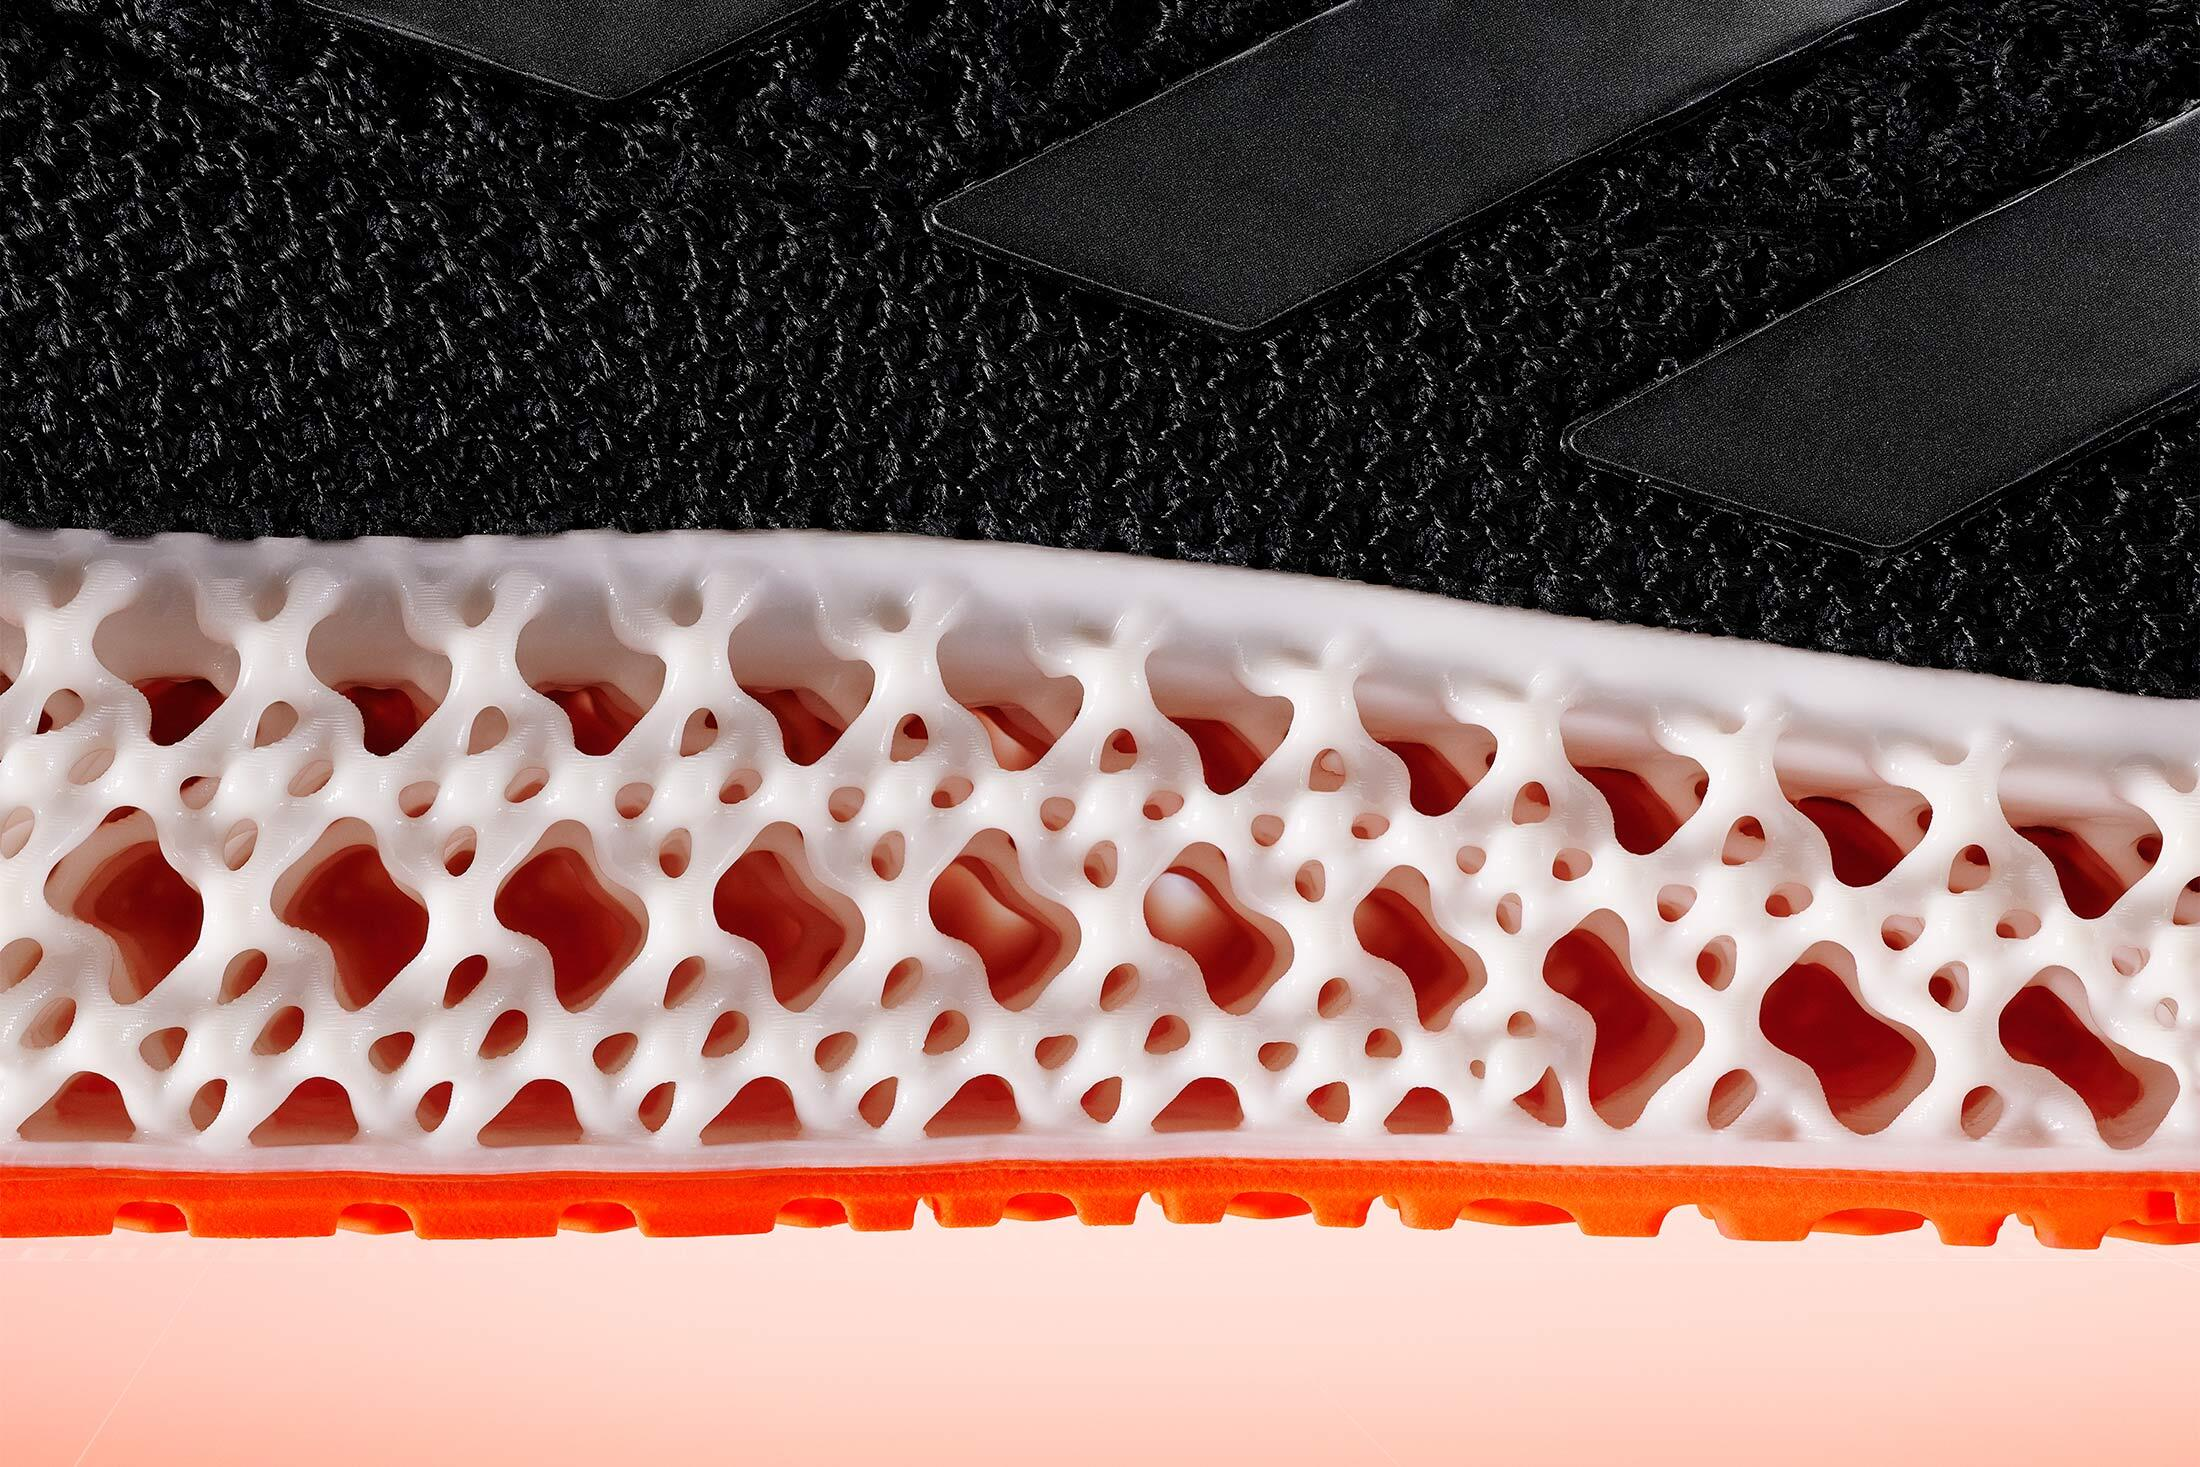 Adidas' 4DFWD 3D printed midsole